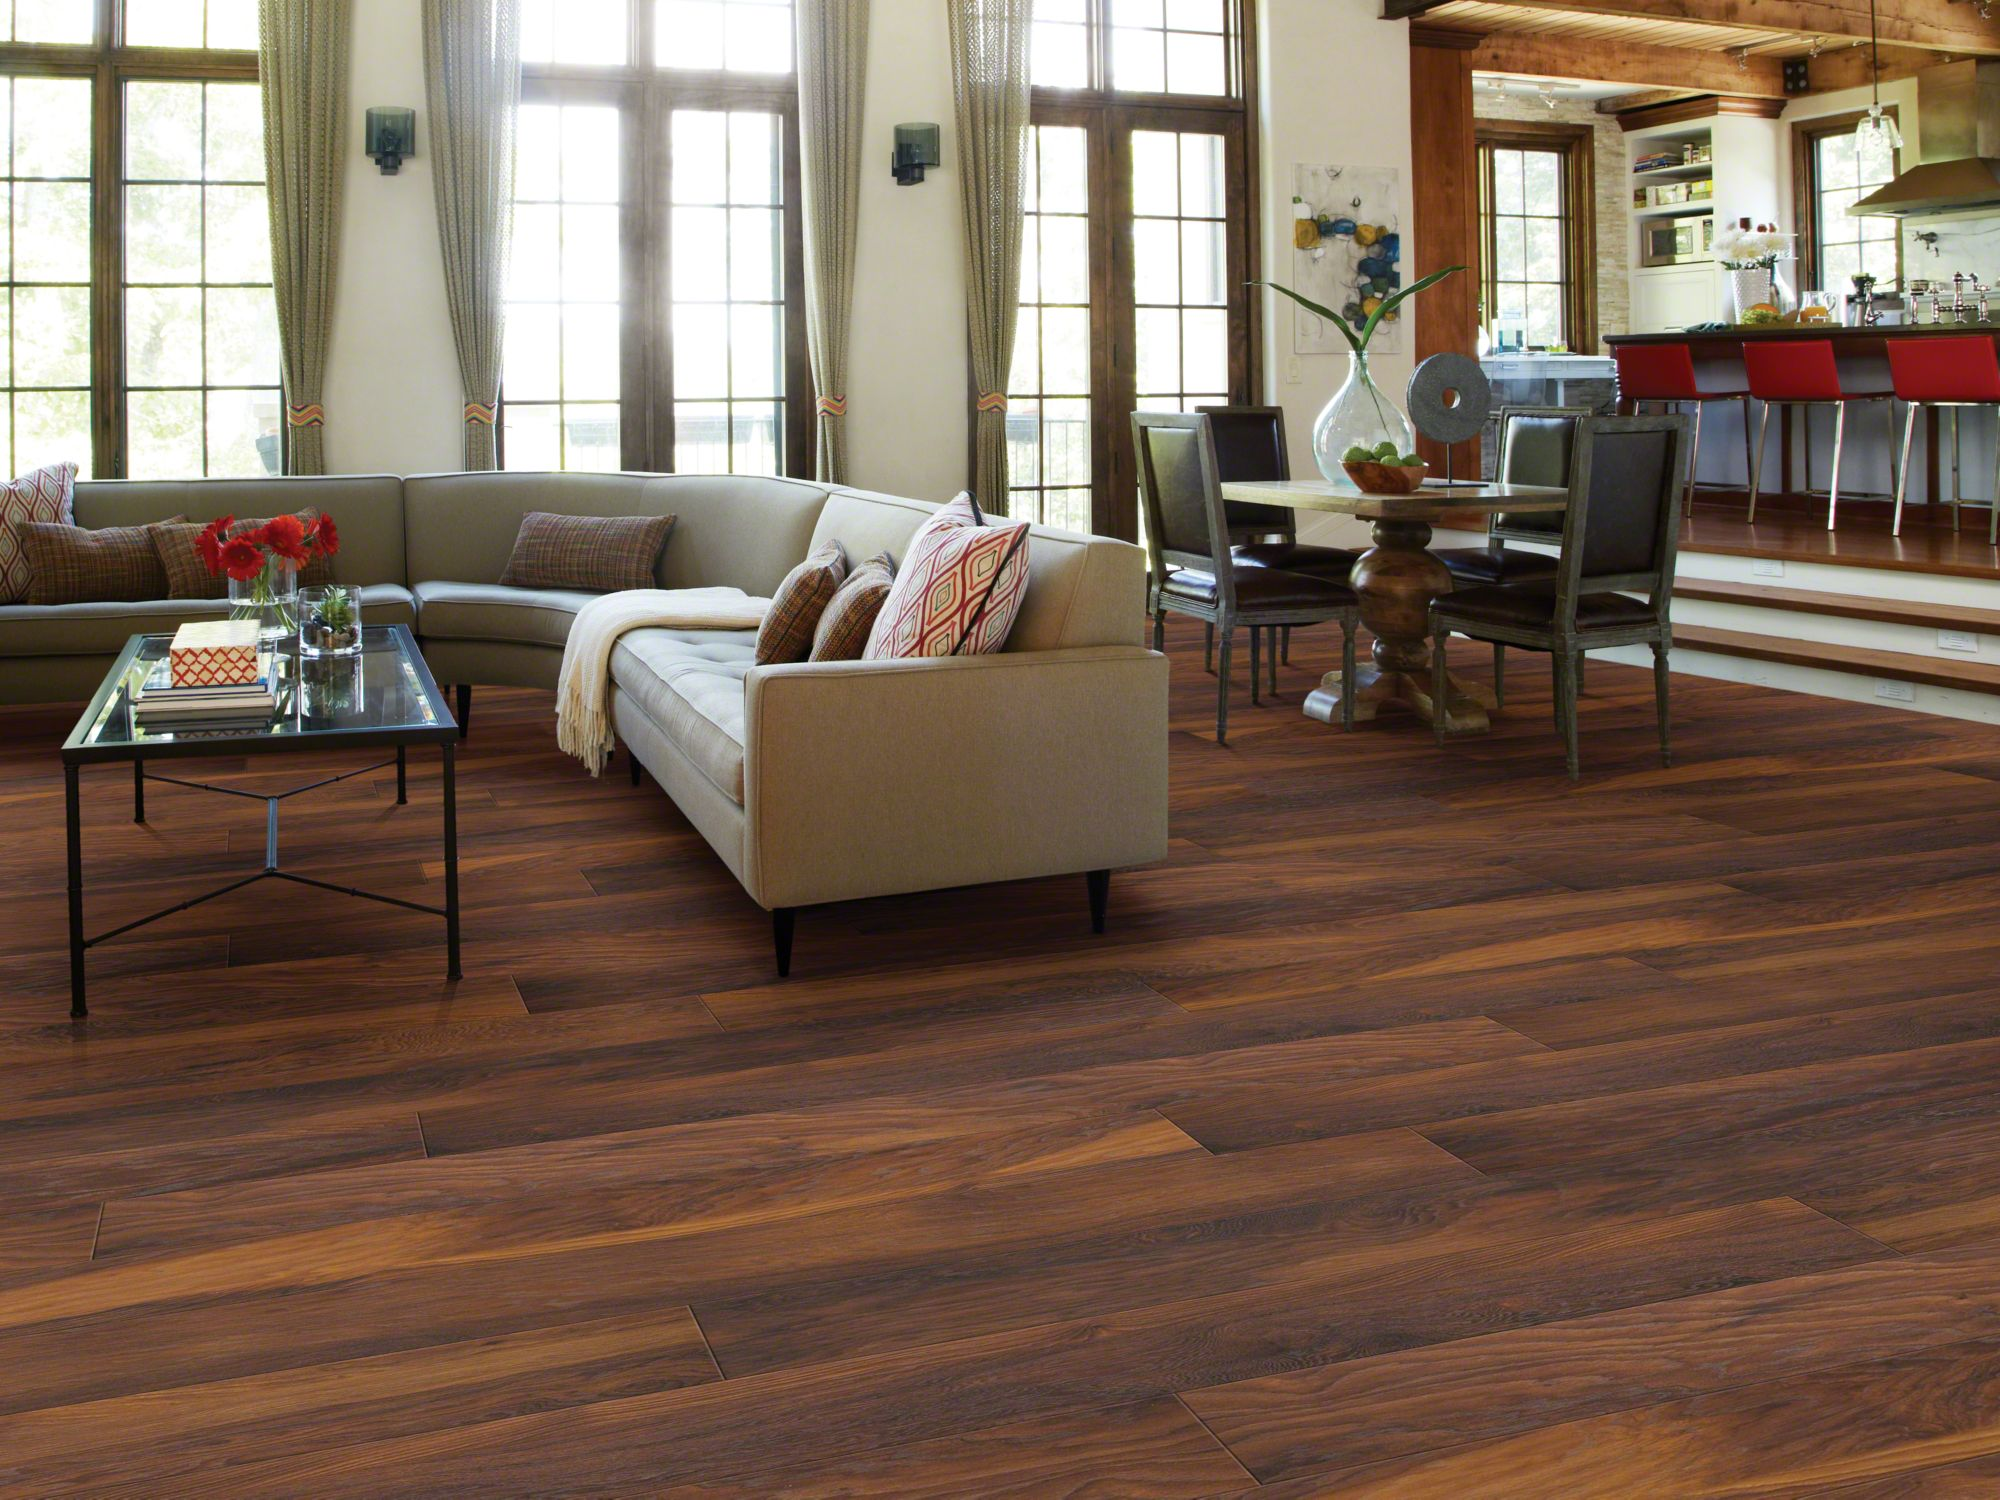 Modular wood laminate flooring care u0026 maintenance nxaajpl